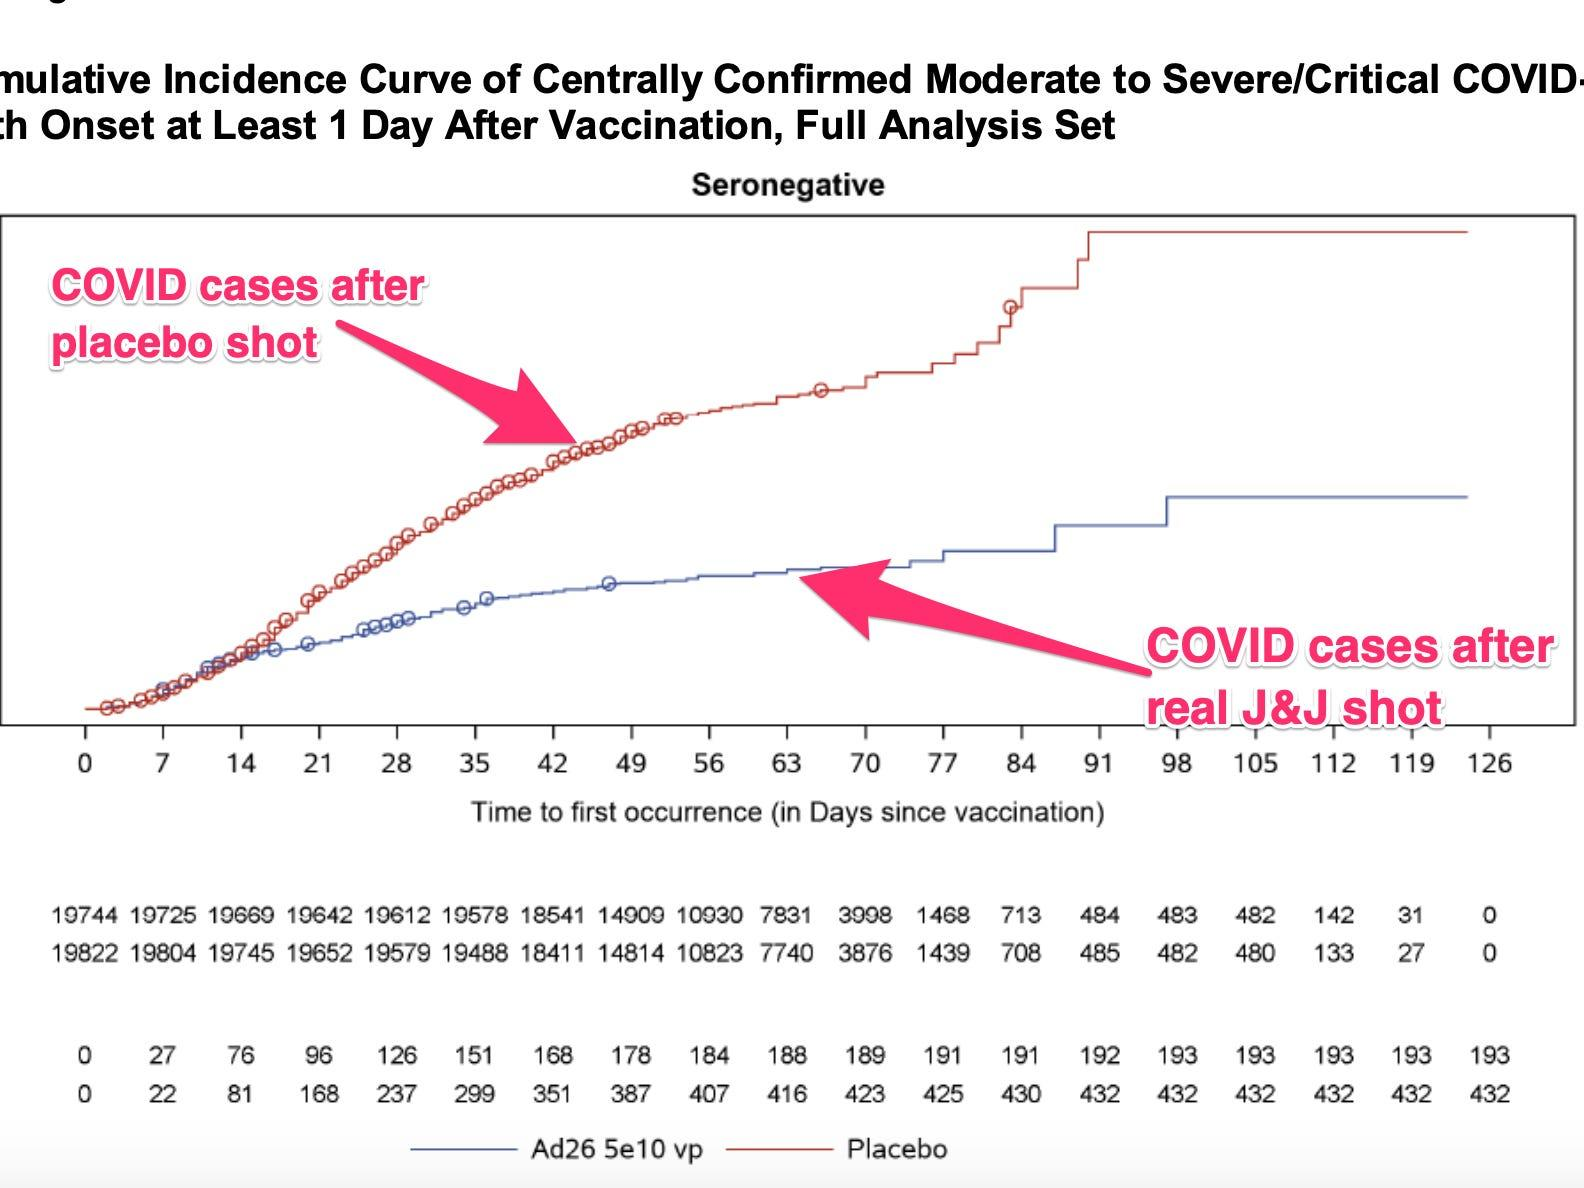 One simple chart shows how well J&J's single-dose coronavirus vaccine works, with protection starting after 2 weeks